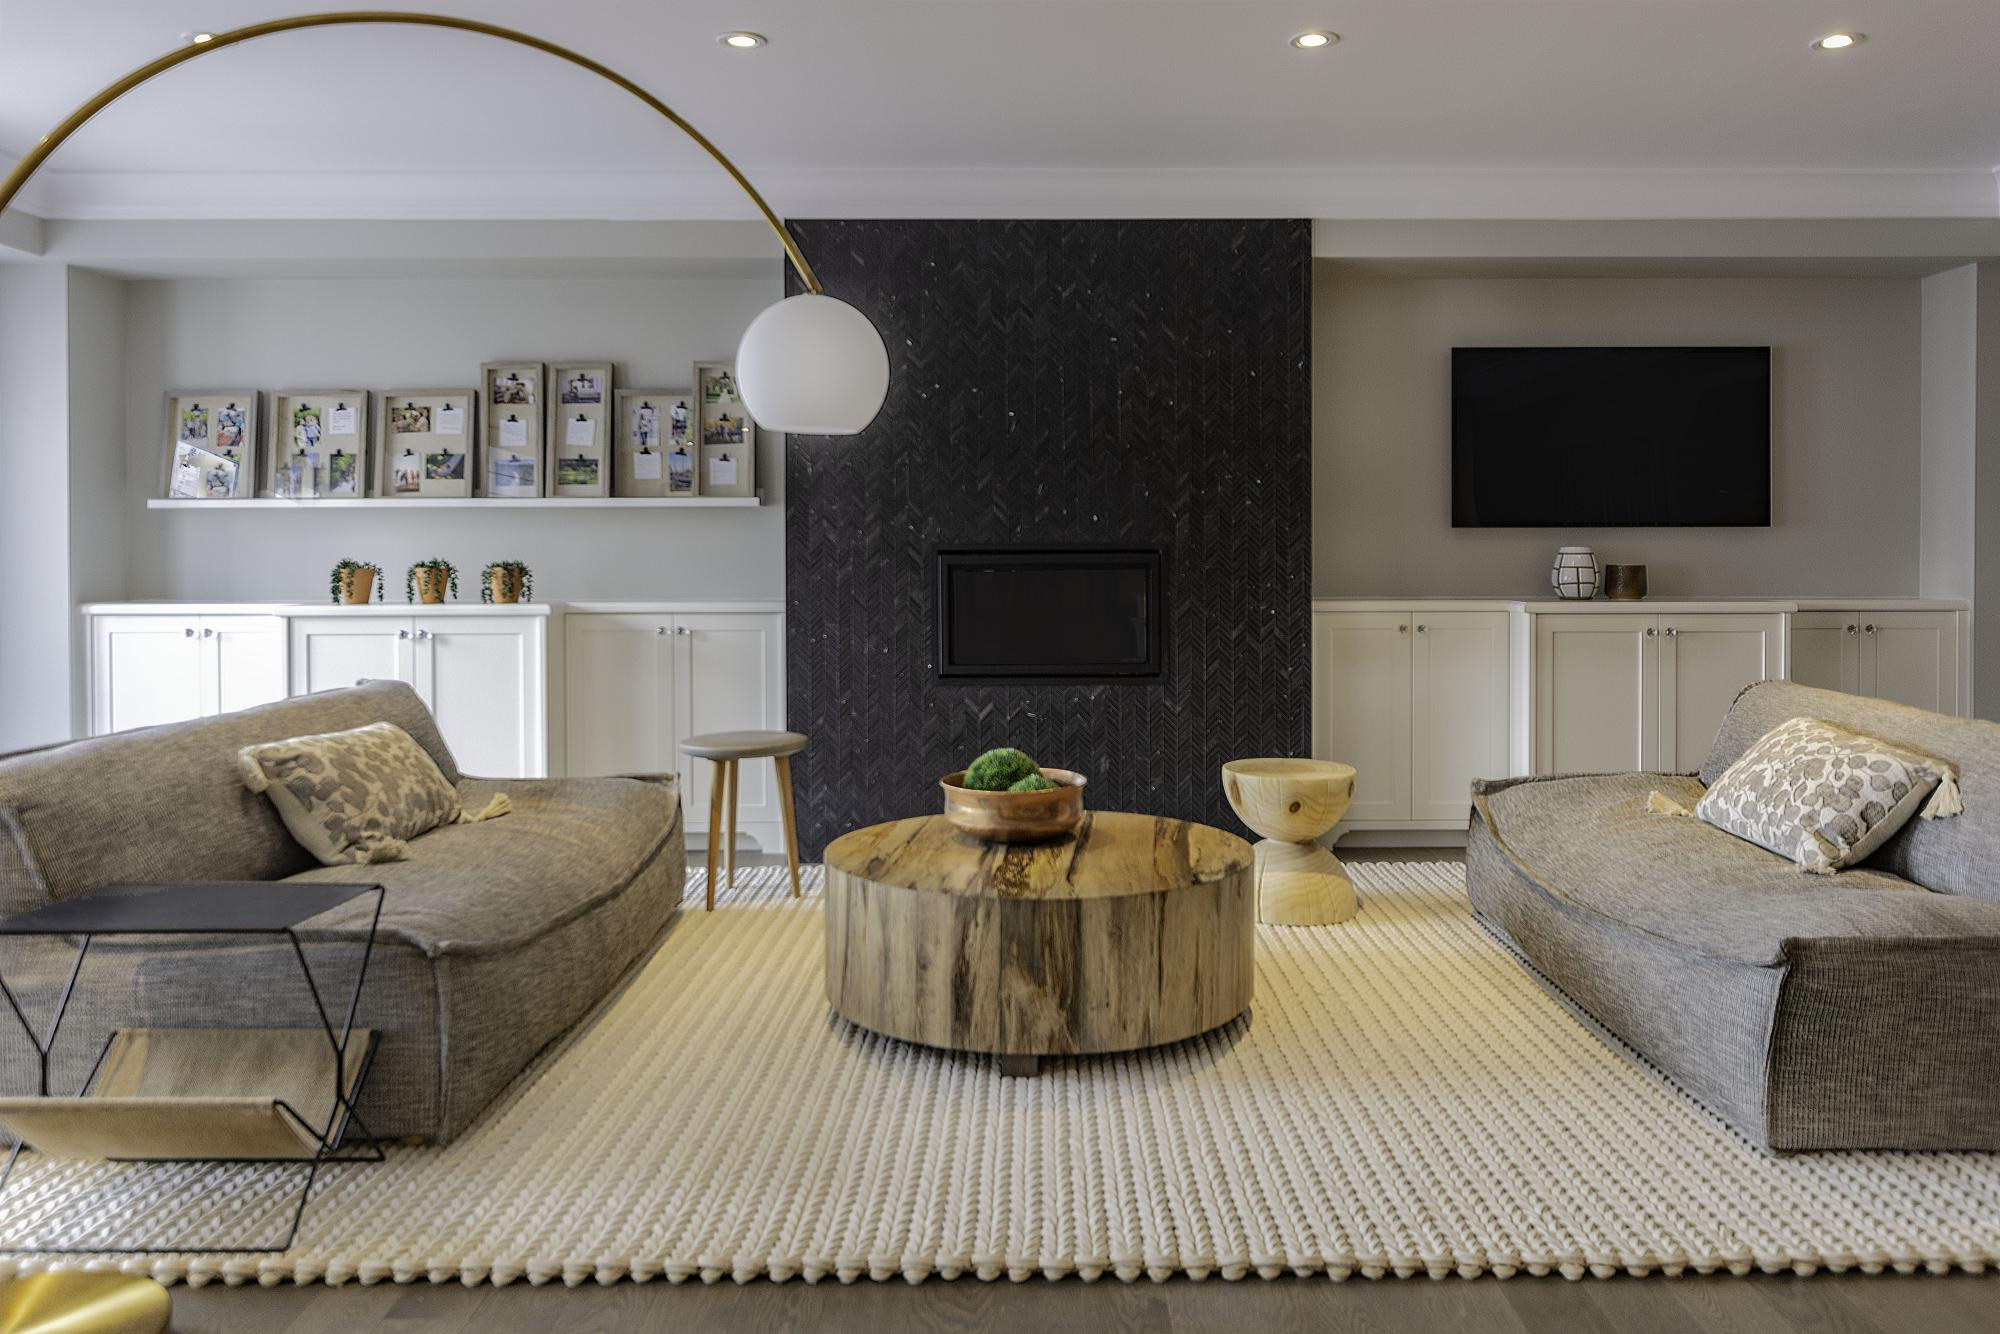 Great room with white carpet, grey couches, a black marble fireplace